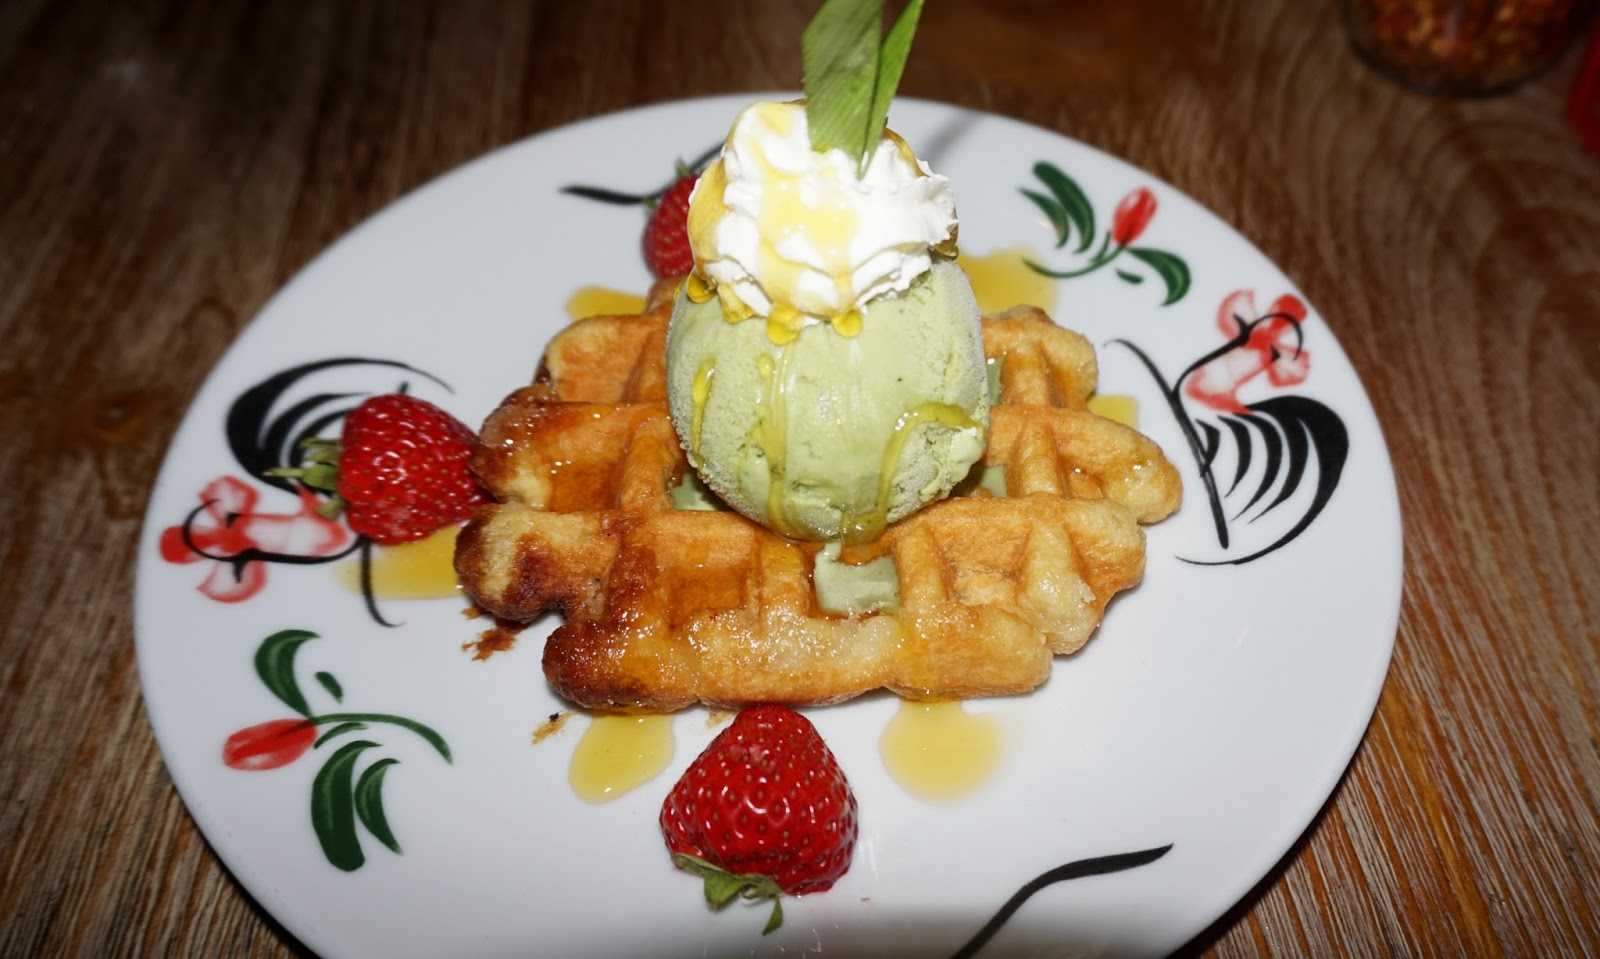 Thaikhun Thai Waffle Green Tea Ice Cream Dessert